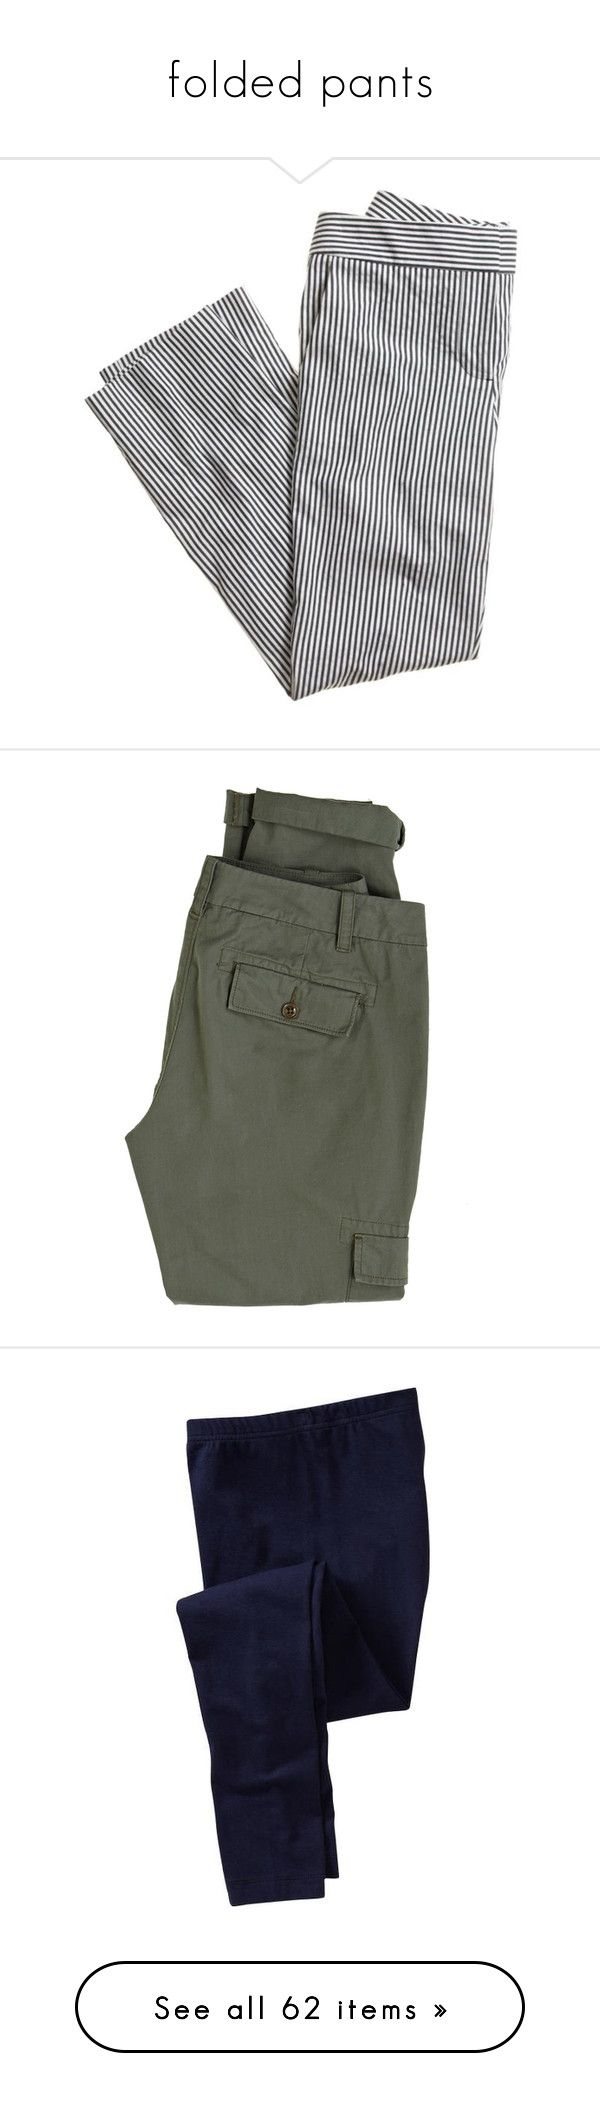 """""""folded pants"""" by giselsimon ❤ liked on Polyvore featuring pants, capris, jeans, bottoms, pantalon, j crew trousers, fitted pants, stretchy pants, straight pants and capri pants"""